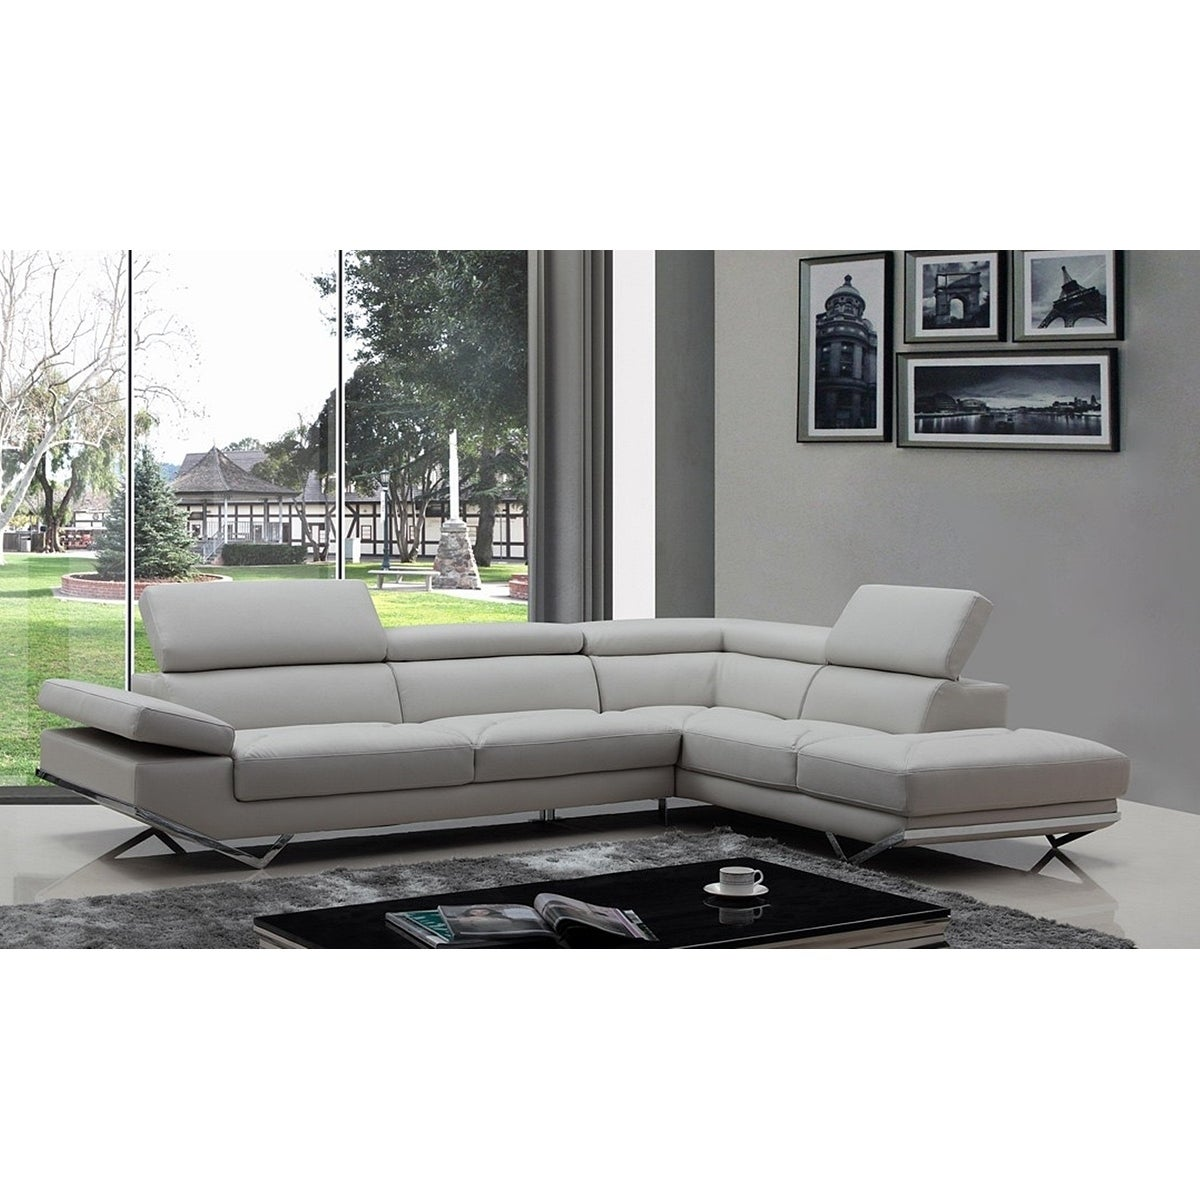 Walden Modern Light Grey Leather L Shape Sofa With Adjule Headrest On Free Shipping Today 17433900